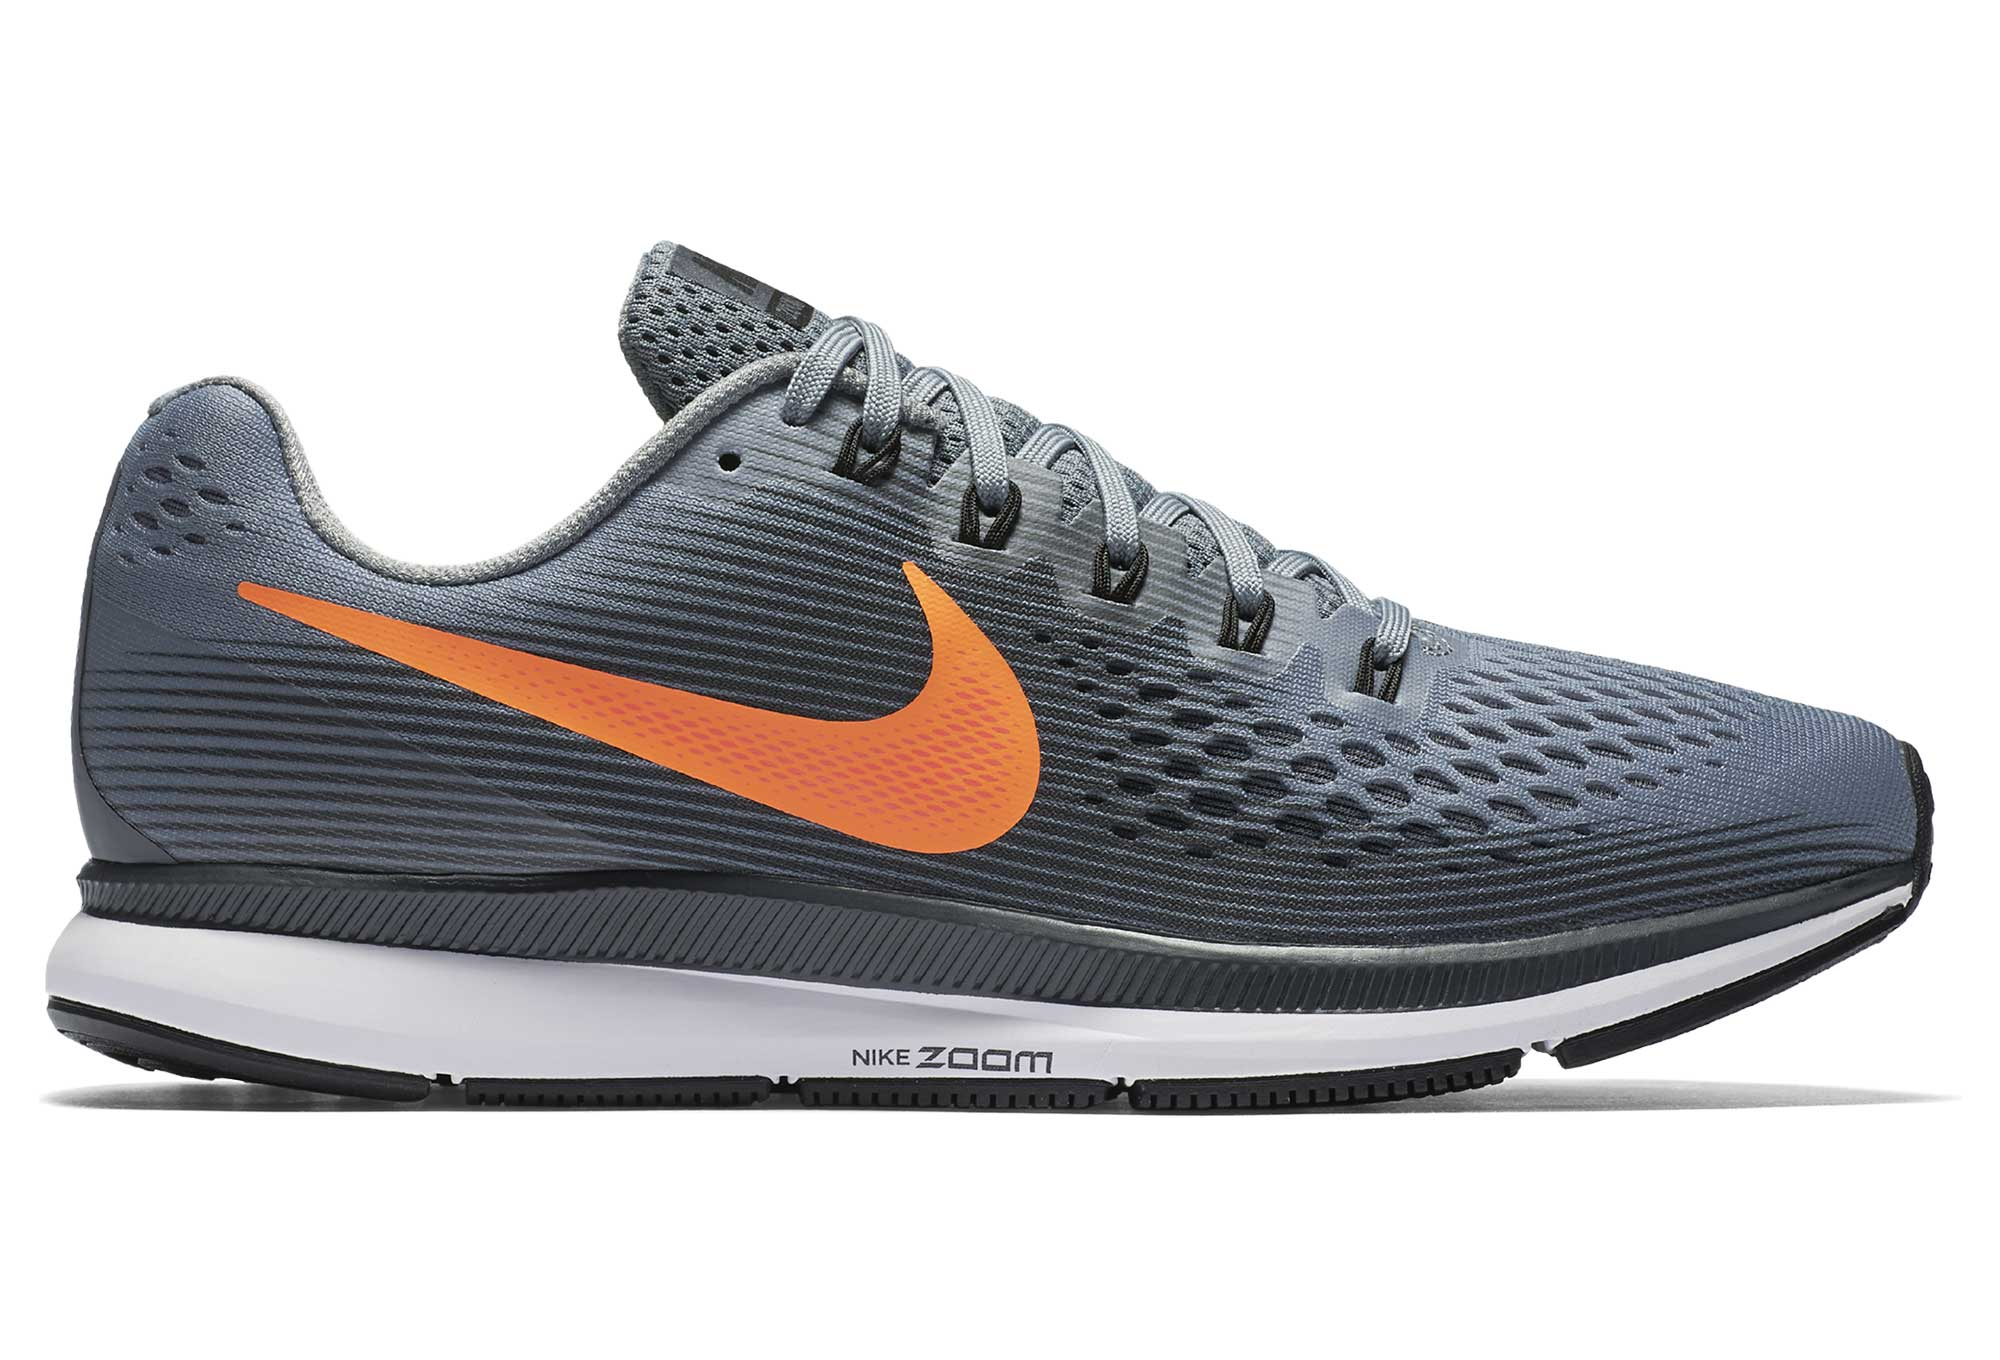 11b7b5919e420 NIKE AIR ZOOM PEGASUS 34 Shoes Grey Orange Men